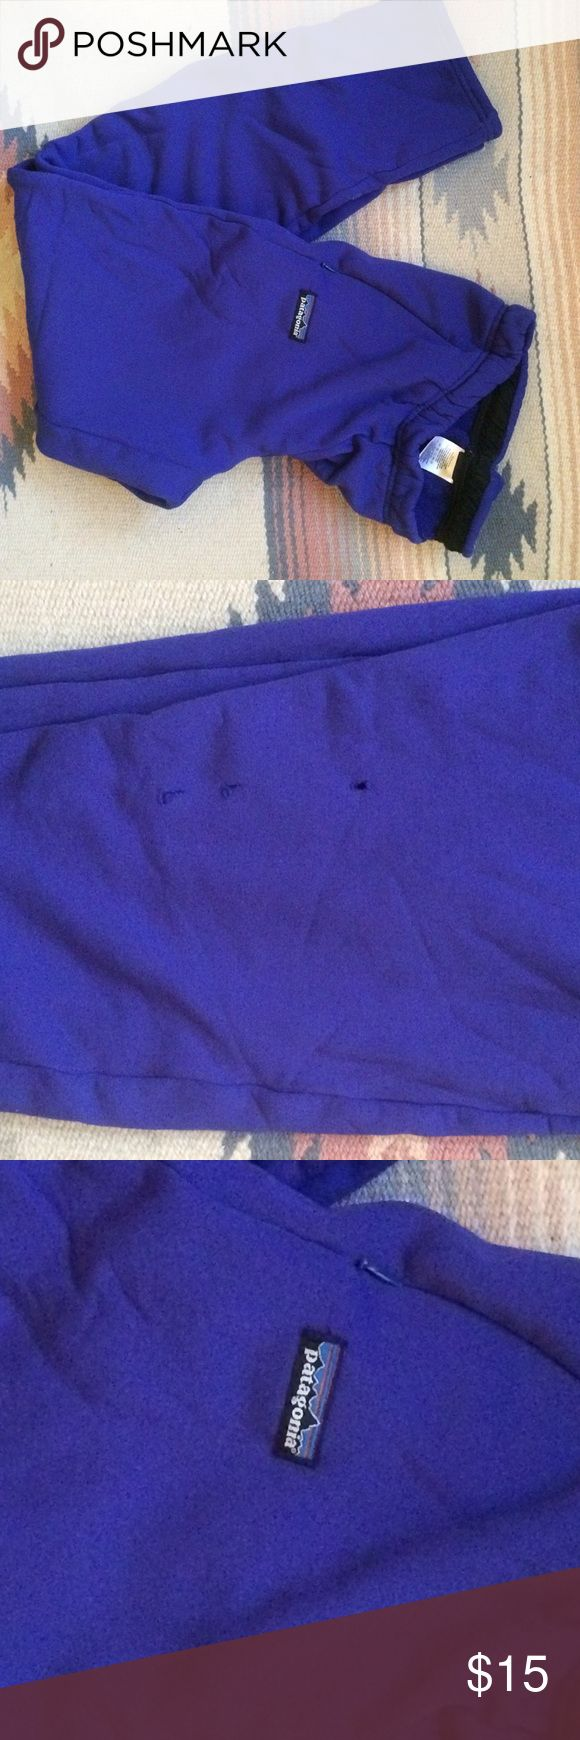 Vintage Patagonia Pull on Fleece Baselayer/Lounge Great hang around pants with zipper side pockets-fleece inside and smooth outside-holes shown in 2nd picture are on the back of the leg Patagonia Pants Leggings